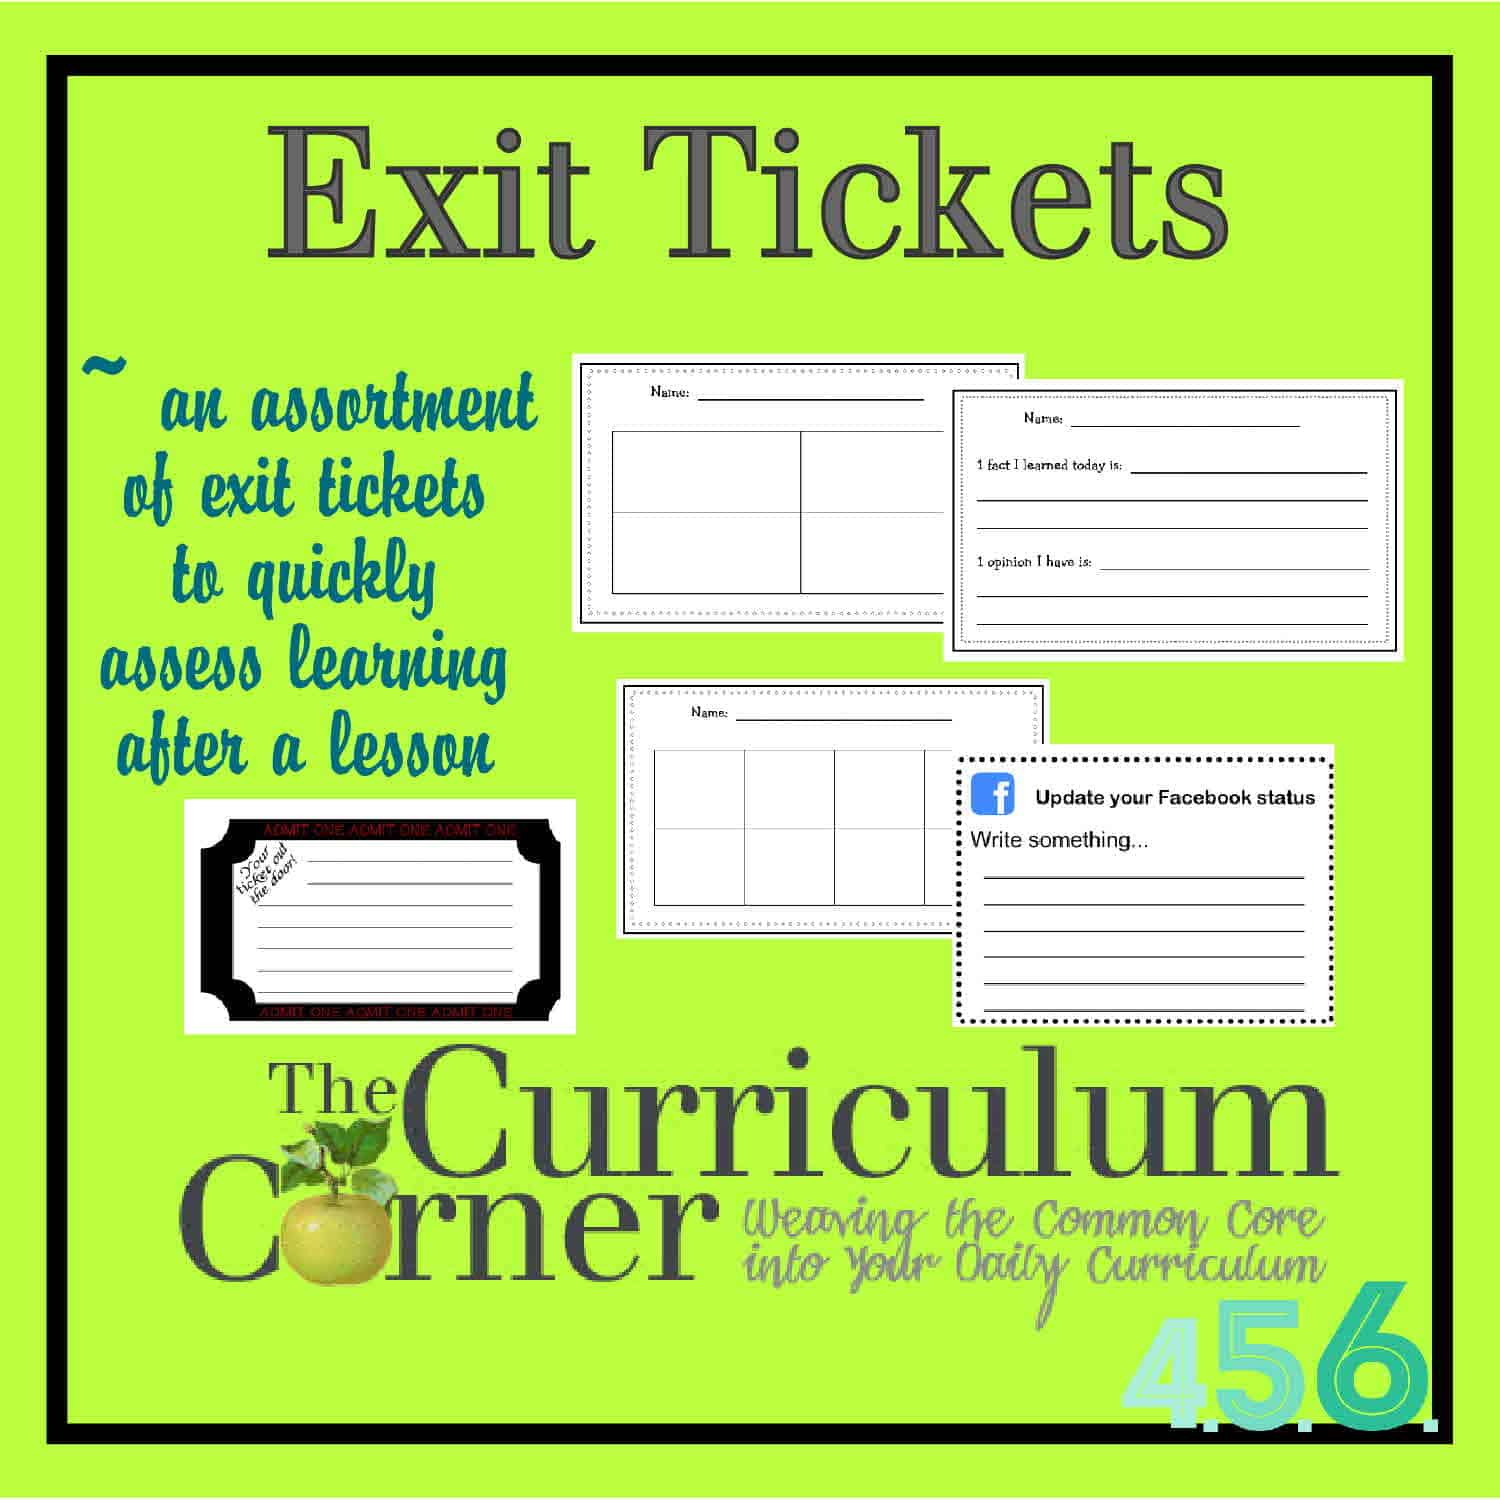 photograph regarding Exit Tickets Printable named Exit Tickets - The Curriculum Corner 4-5-6